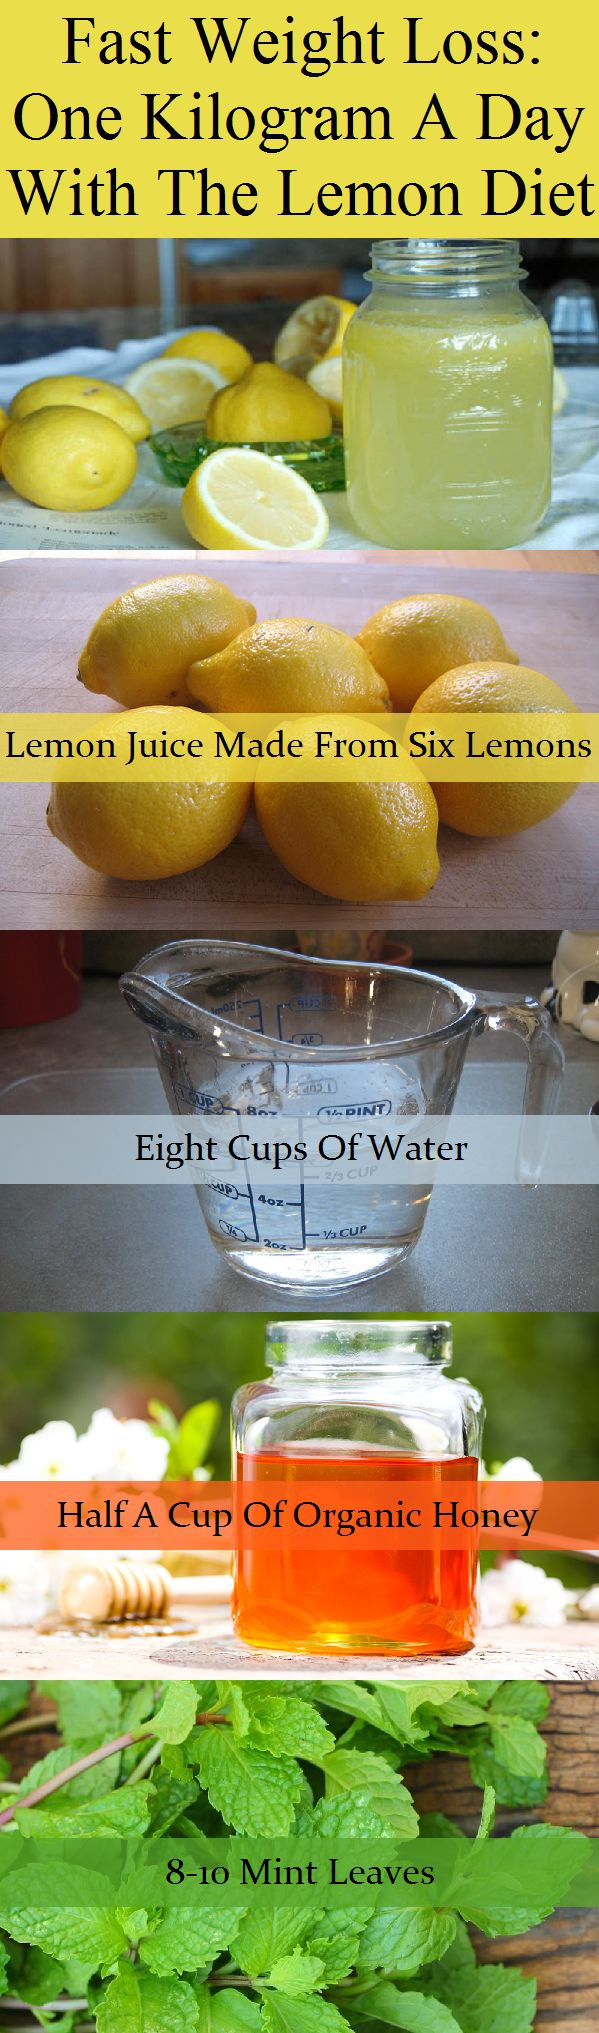 The lemon diet can also speed up the metabolism and strengthen immunity.